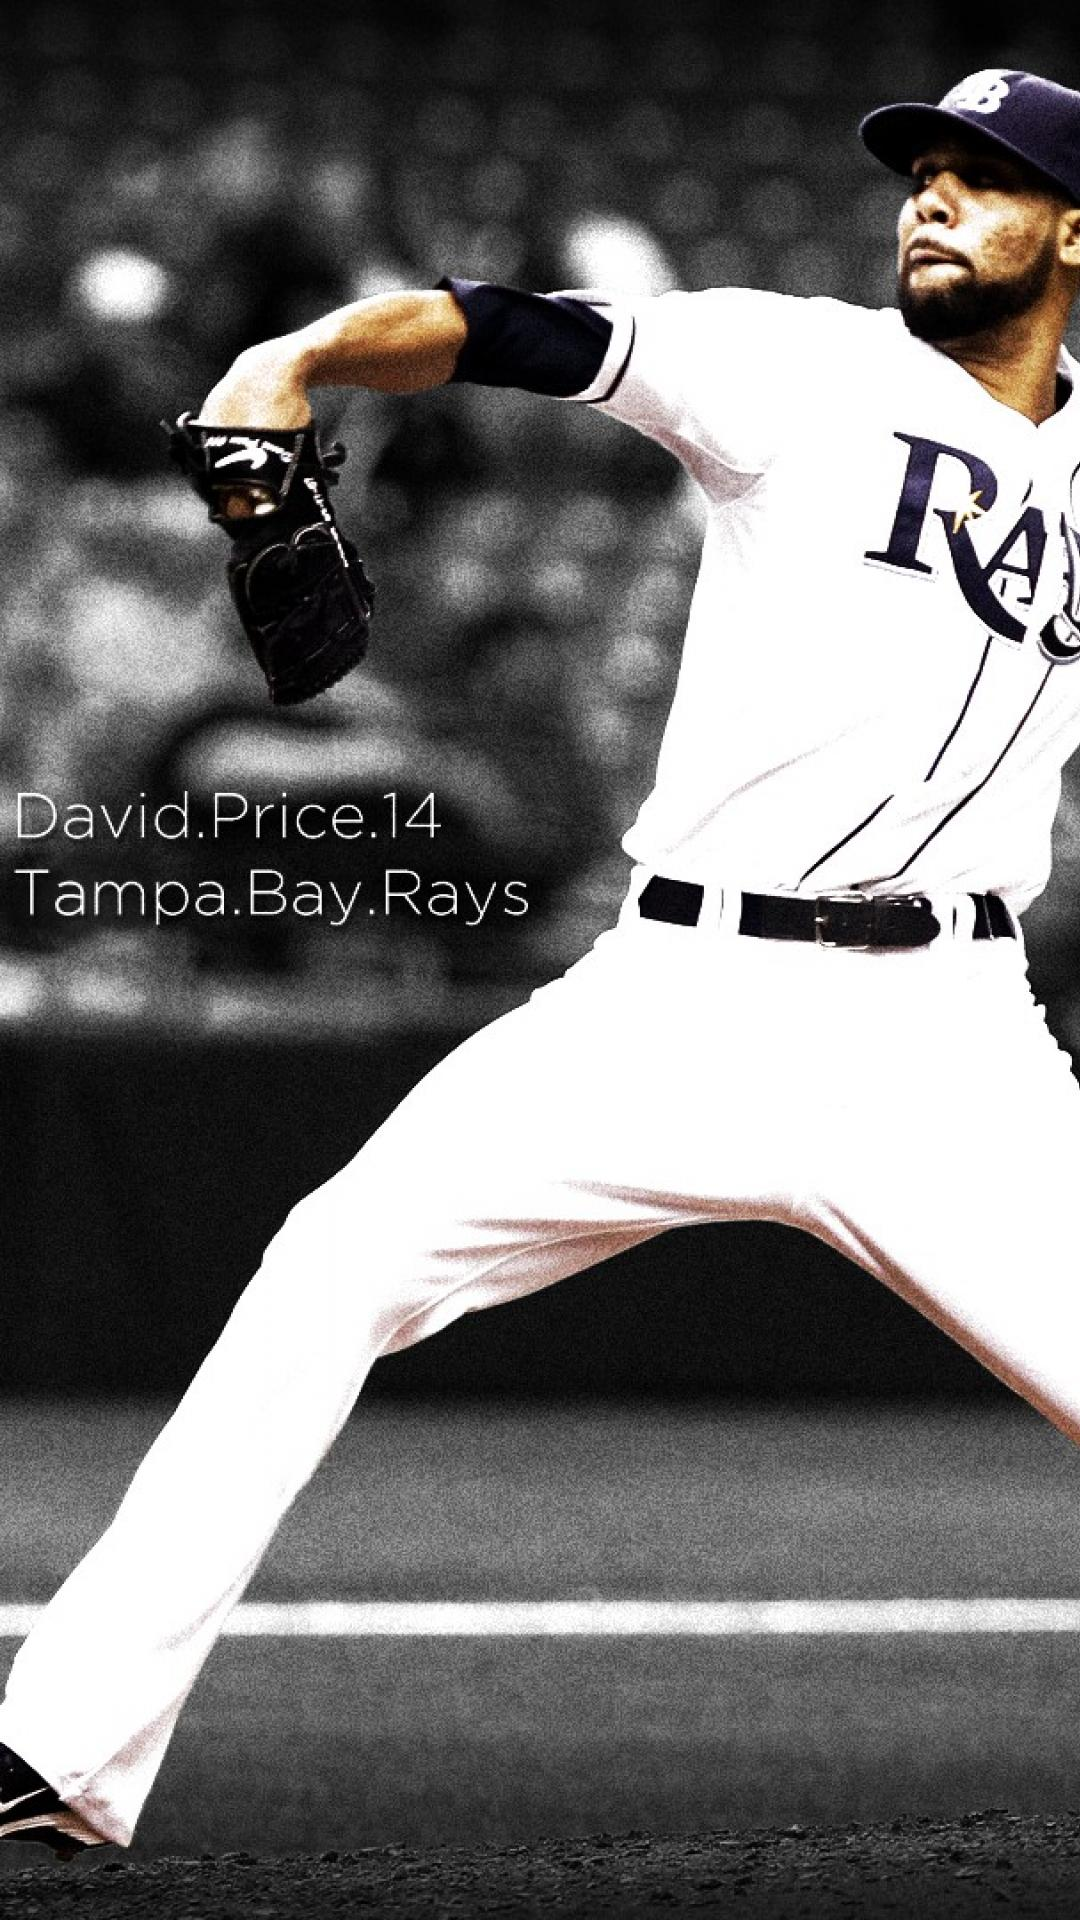 Simple tampa bay rays simplicity david price wallpaper 22855 1080x1920